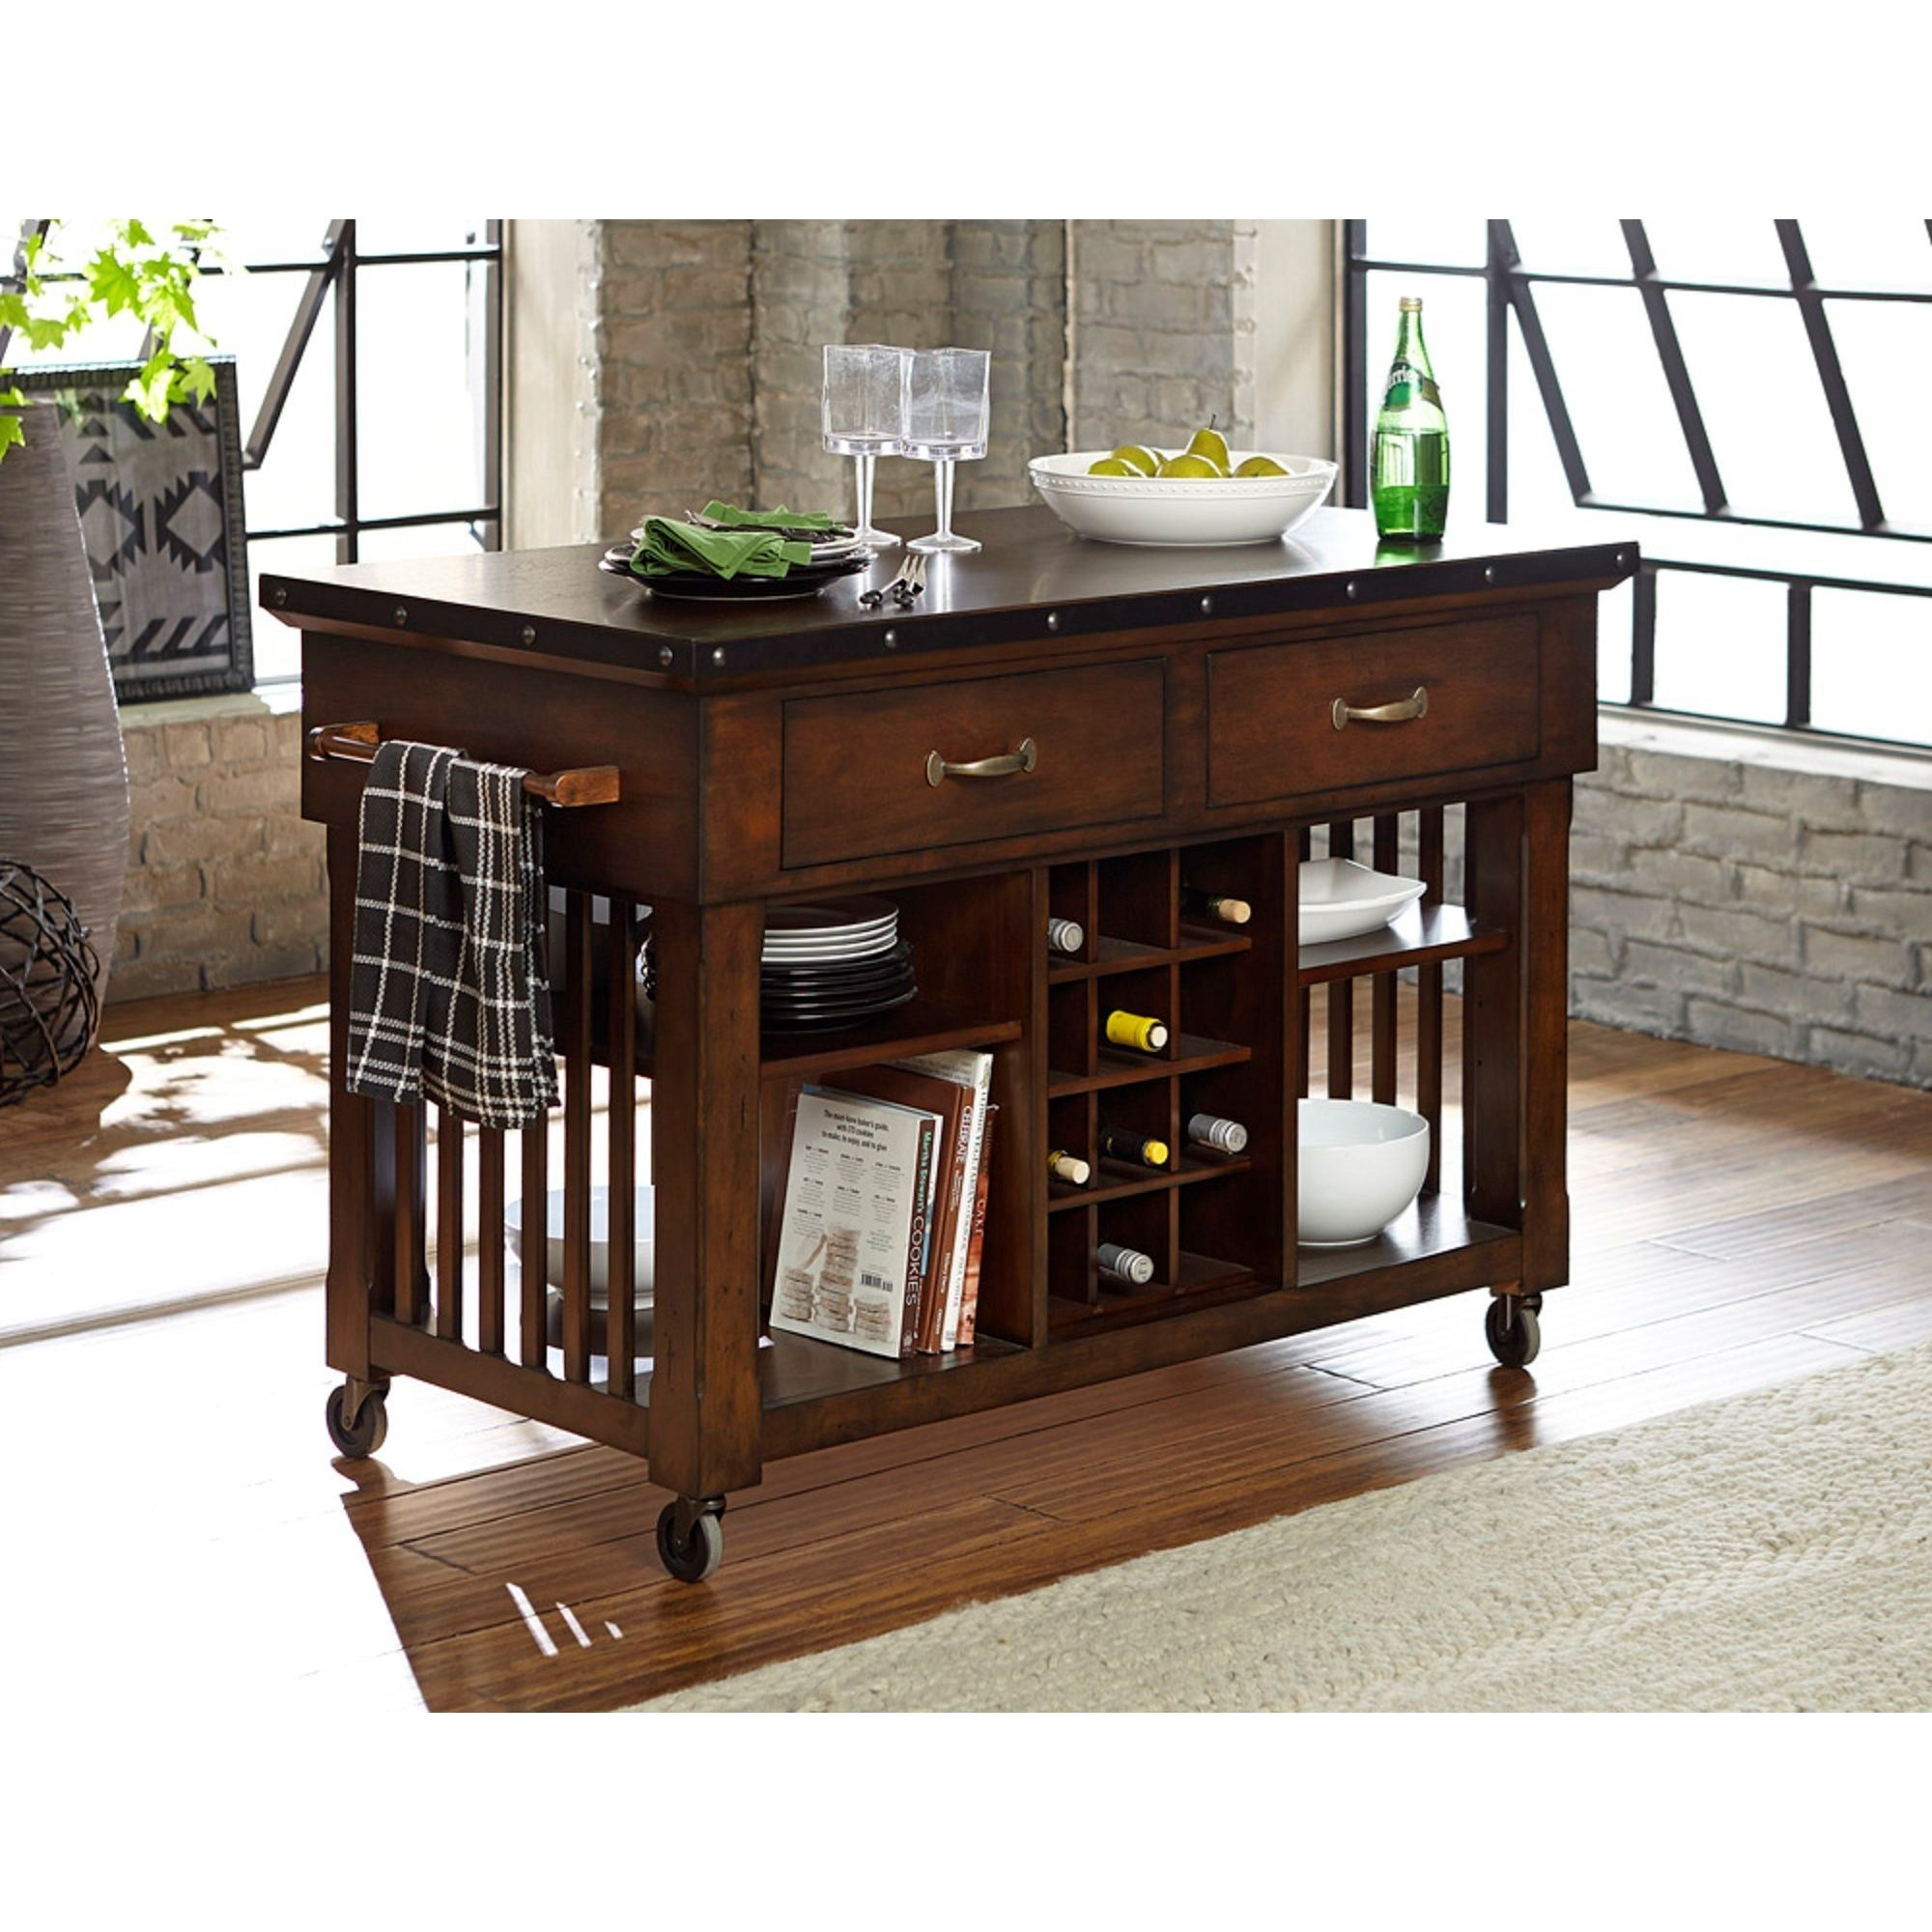 kitchen island cart industrial. Homelegance Schleiger Industrial Kitchen Island Cart With Metal Trim And Decorative Nail Heads